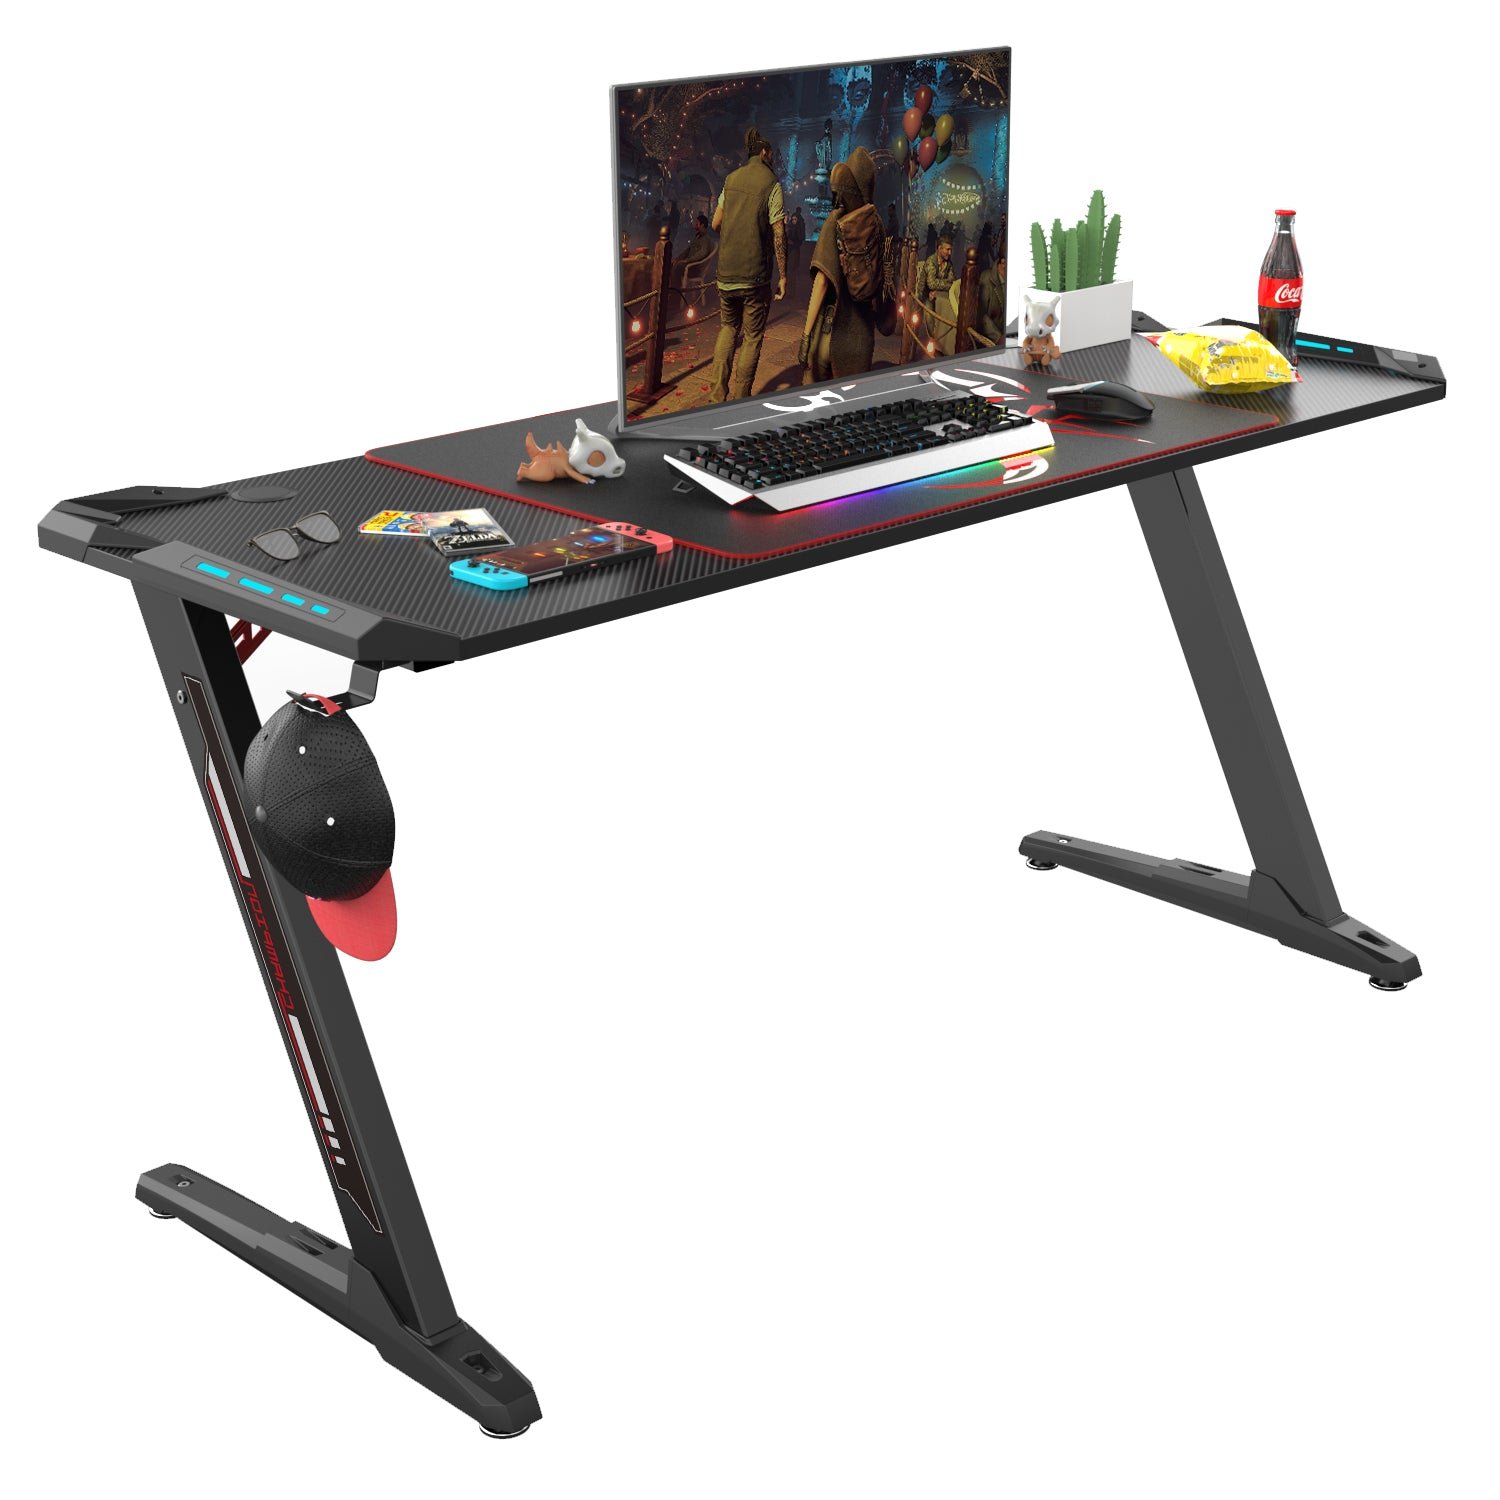 Eureka Ergonomic® 60 inch Z Shaped Large Gaming PC Computer Desk with RGB LED Lights, Free Mouse Pad Controller Stand Headset Hook & Cup Holder for E-Sport Racing Gamer Pro Home Office Gift